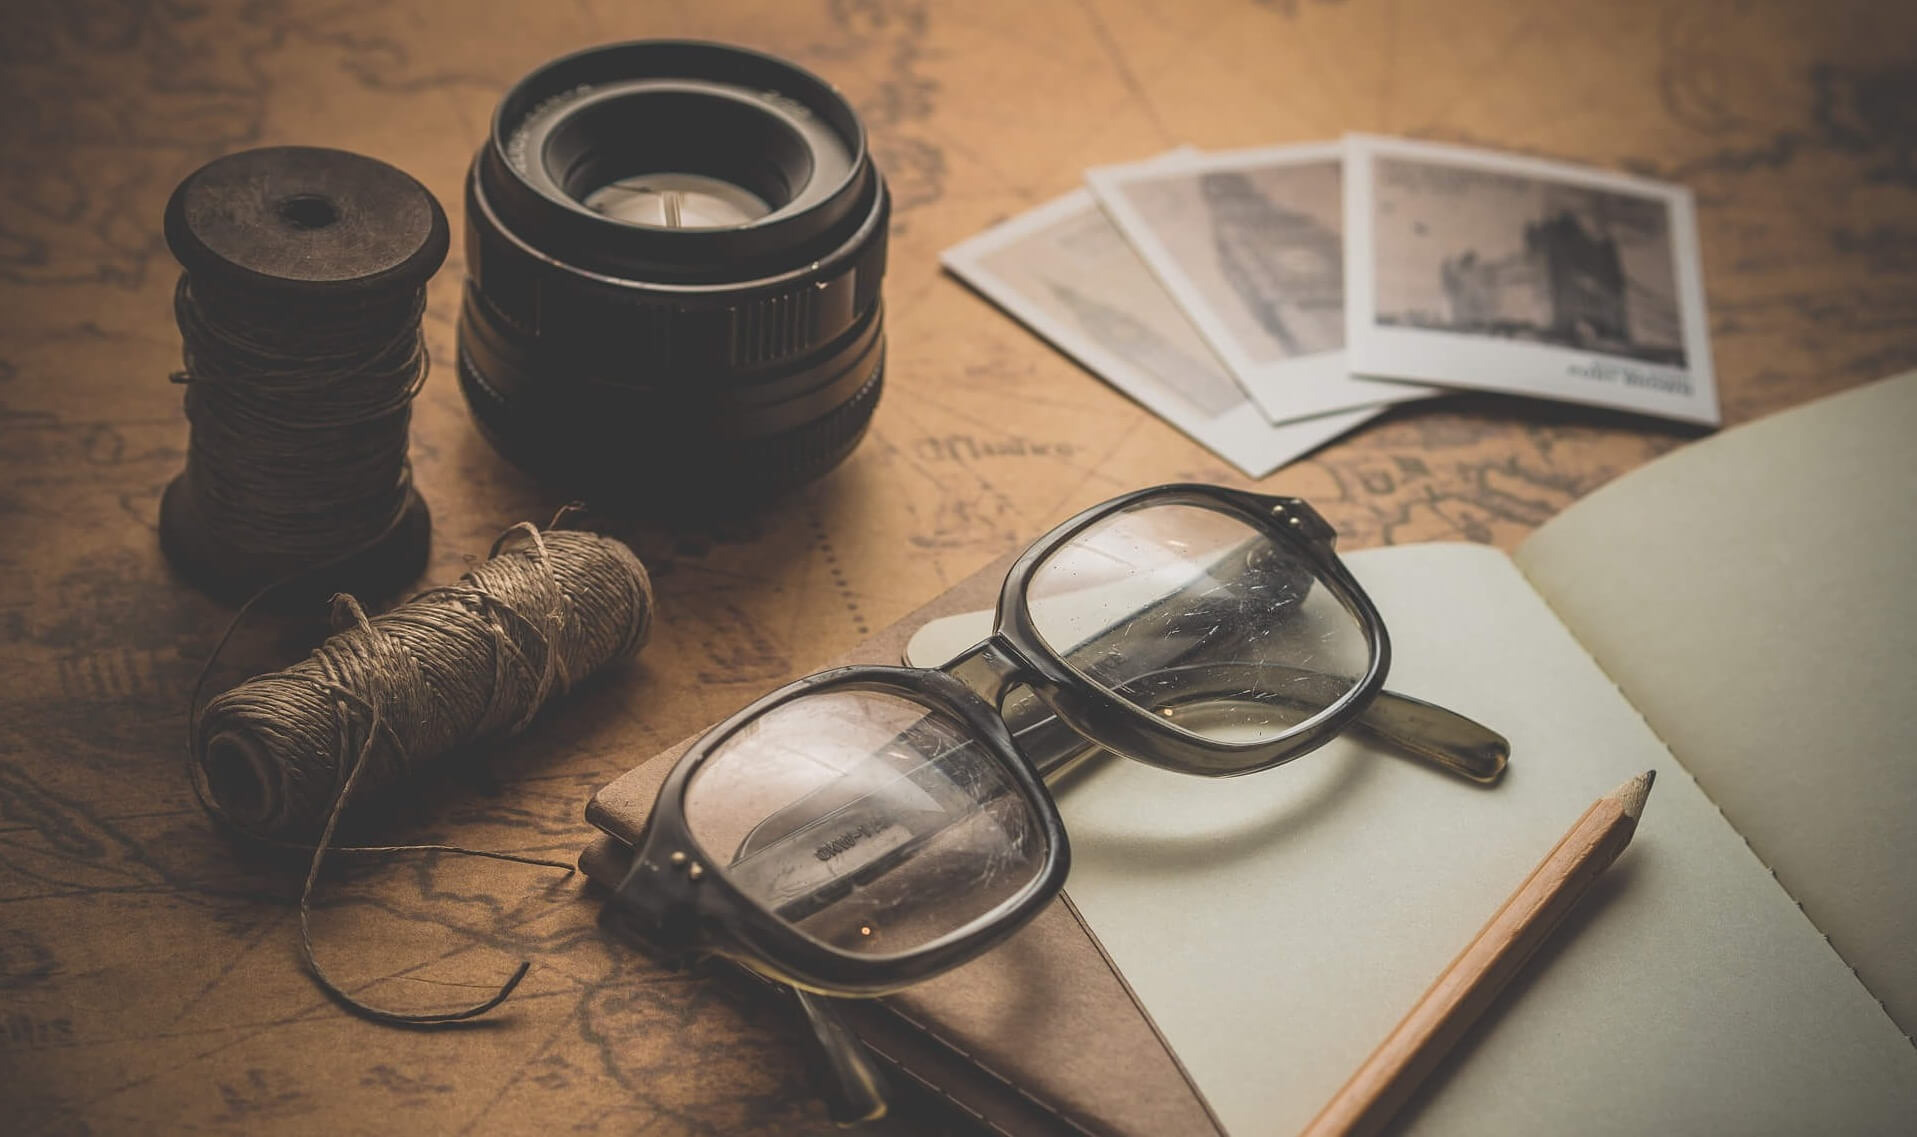 Planning A Vacation with glasses, diary, pencil, photographs, ropes and lenses